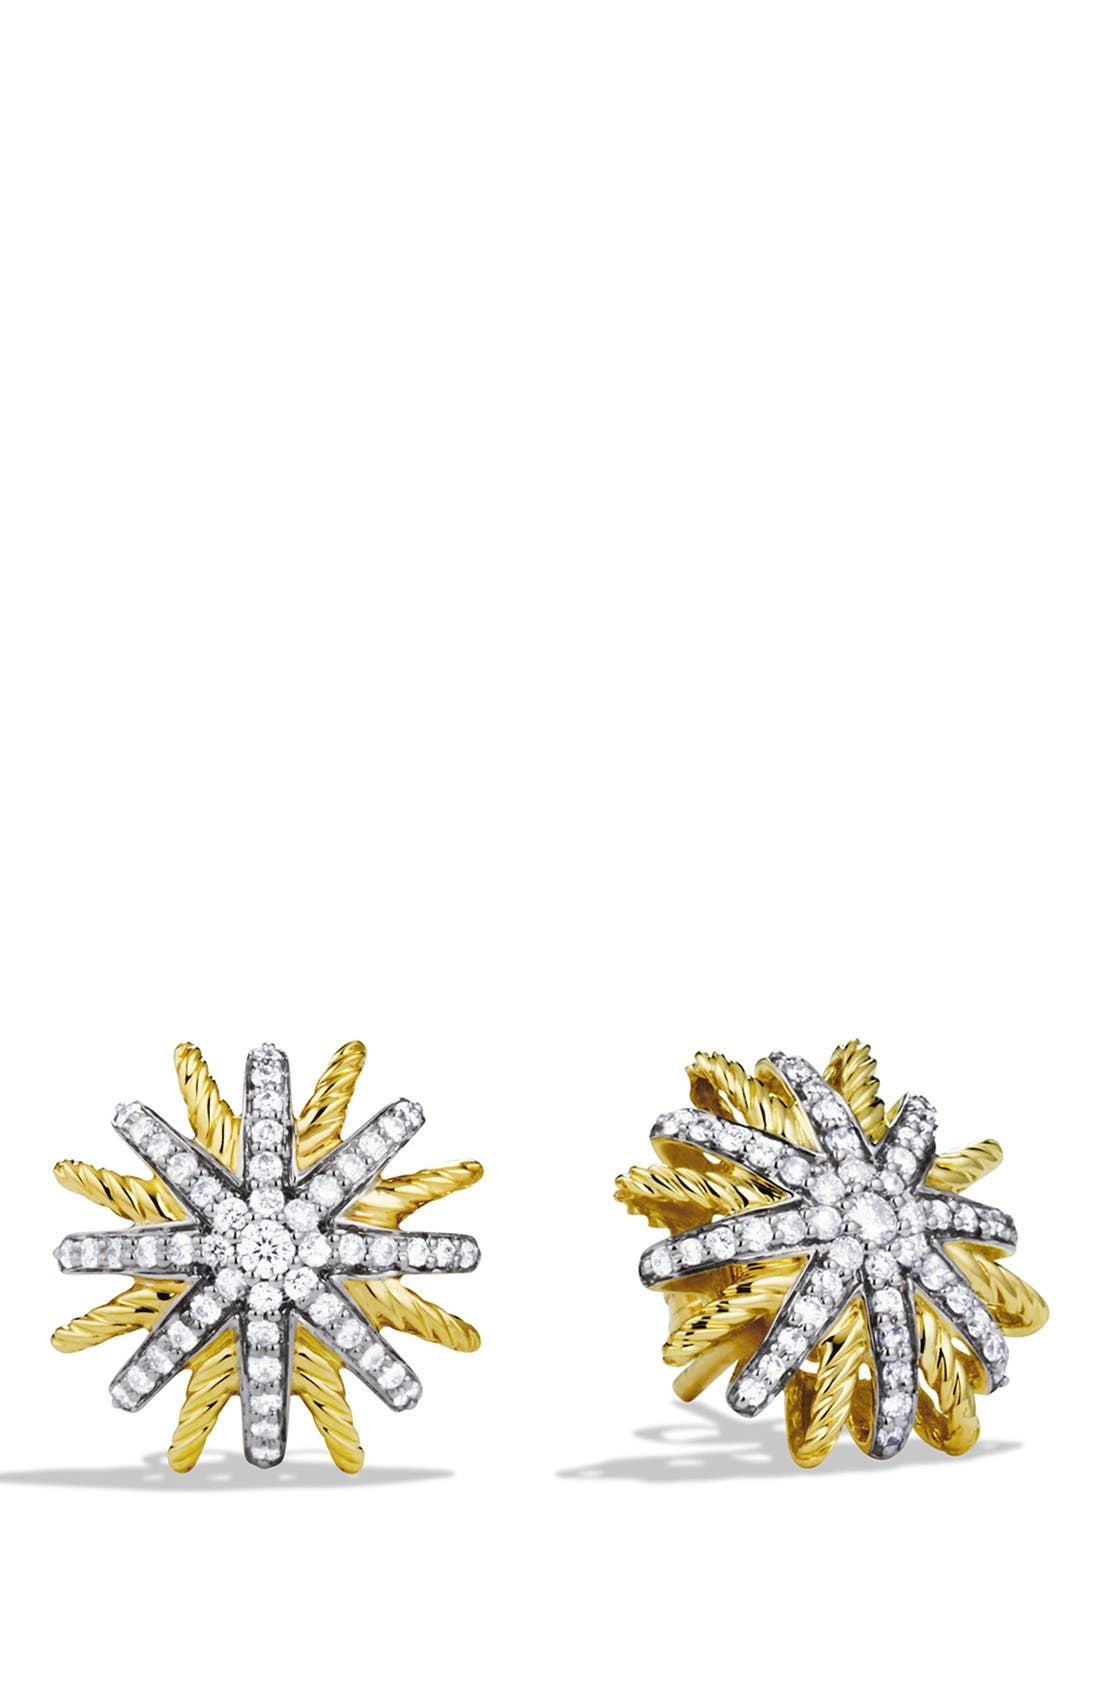 Alternate Image 1 Selected - David Yurman 'Starburst' Extra-Small Earrings with Diamonds in Gold